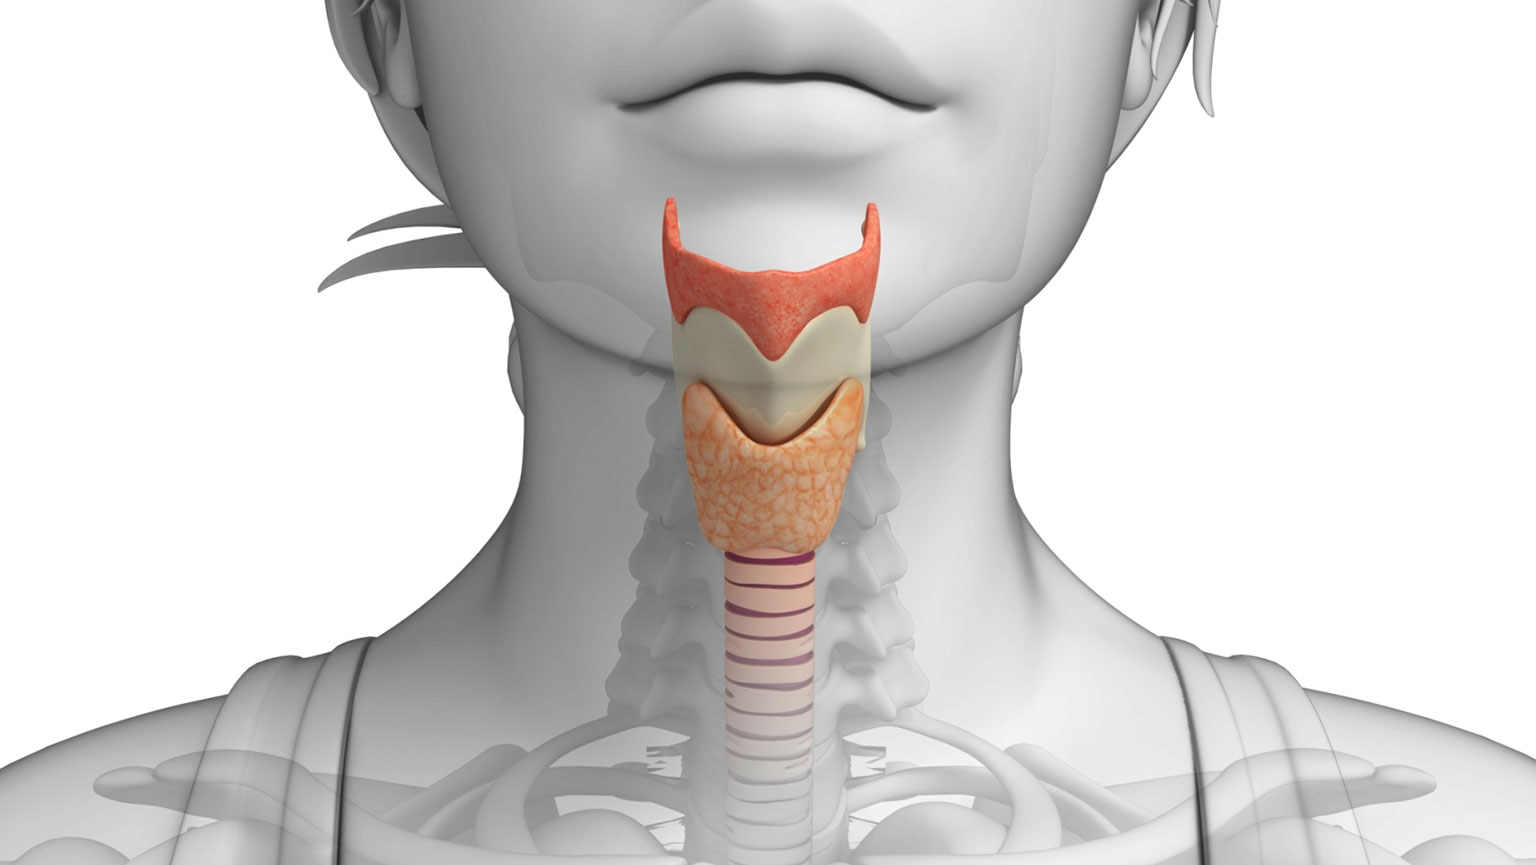 Digestive Systemphysiology Of The Mouth Esophagus And The Great